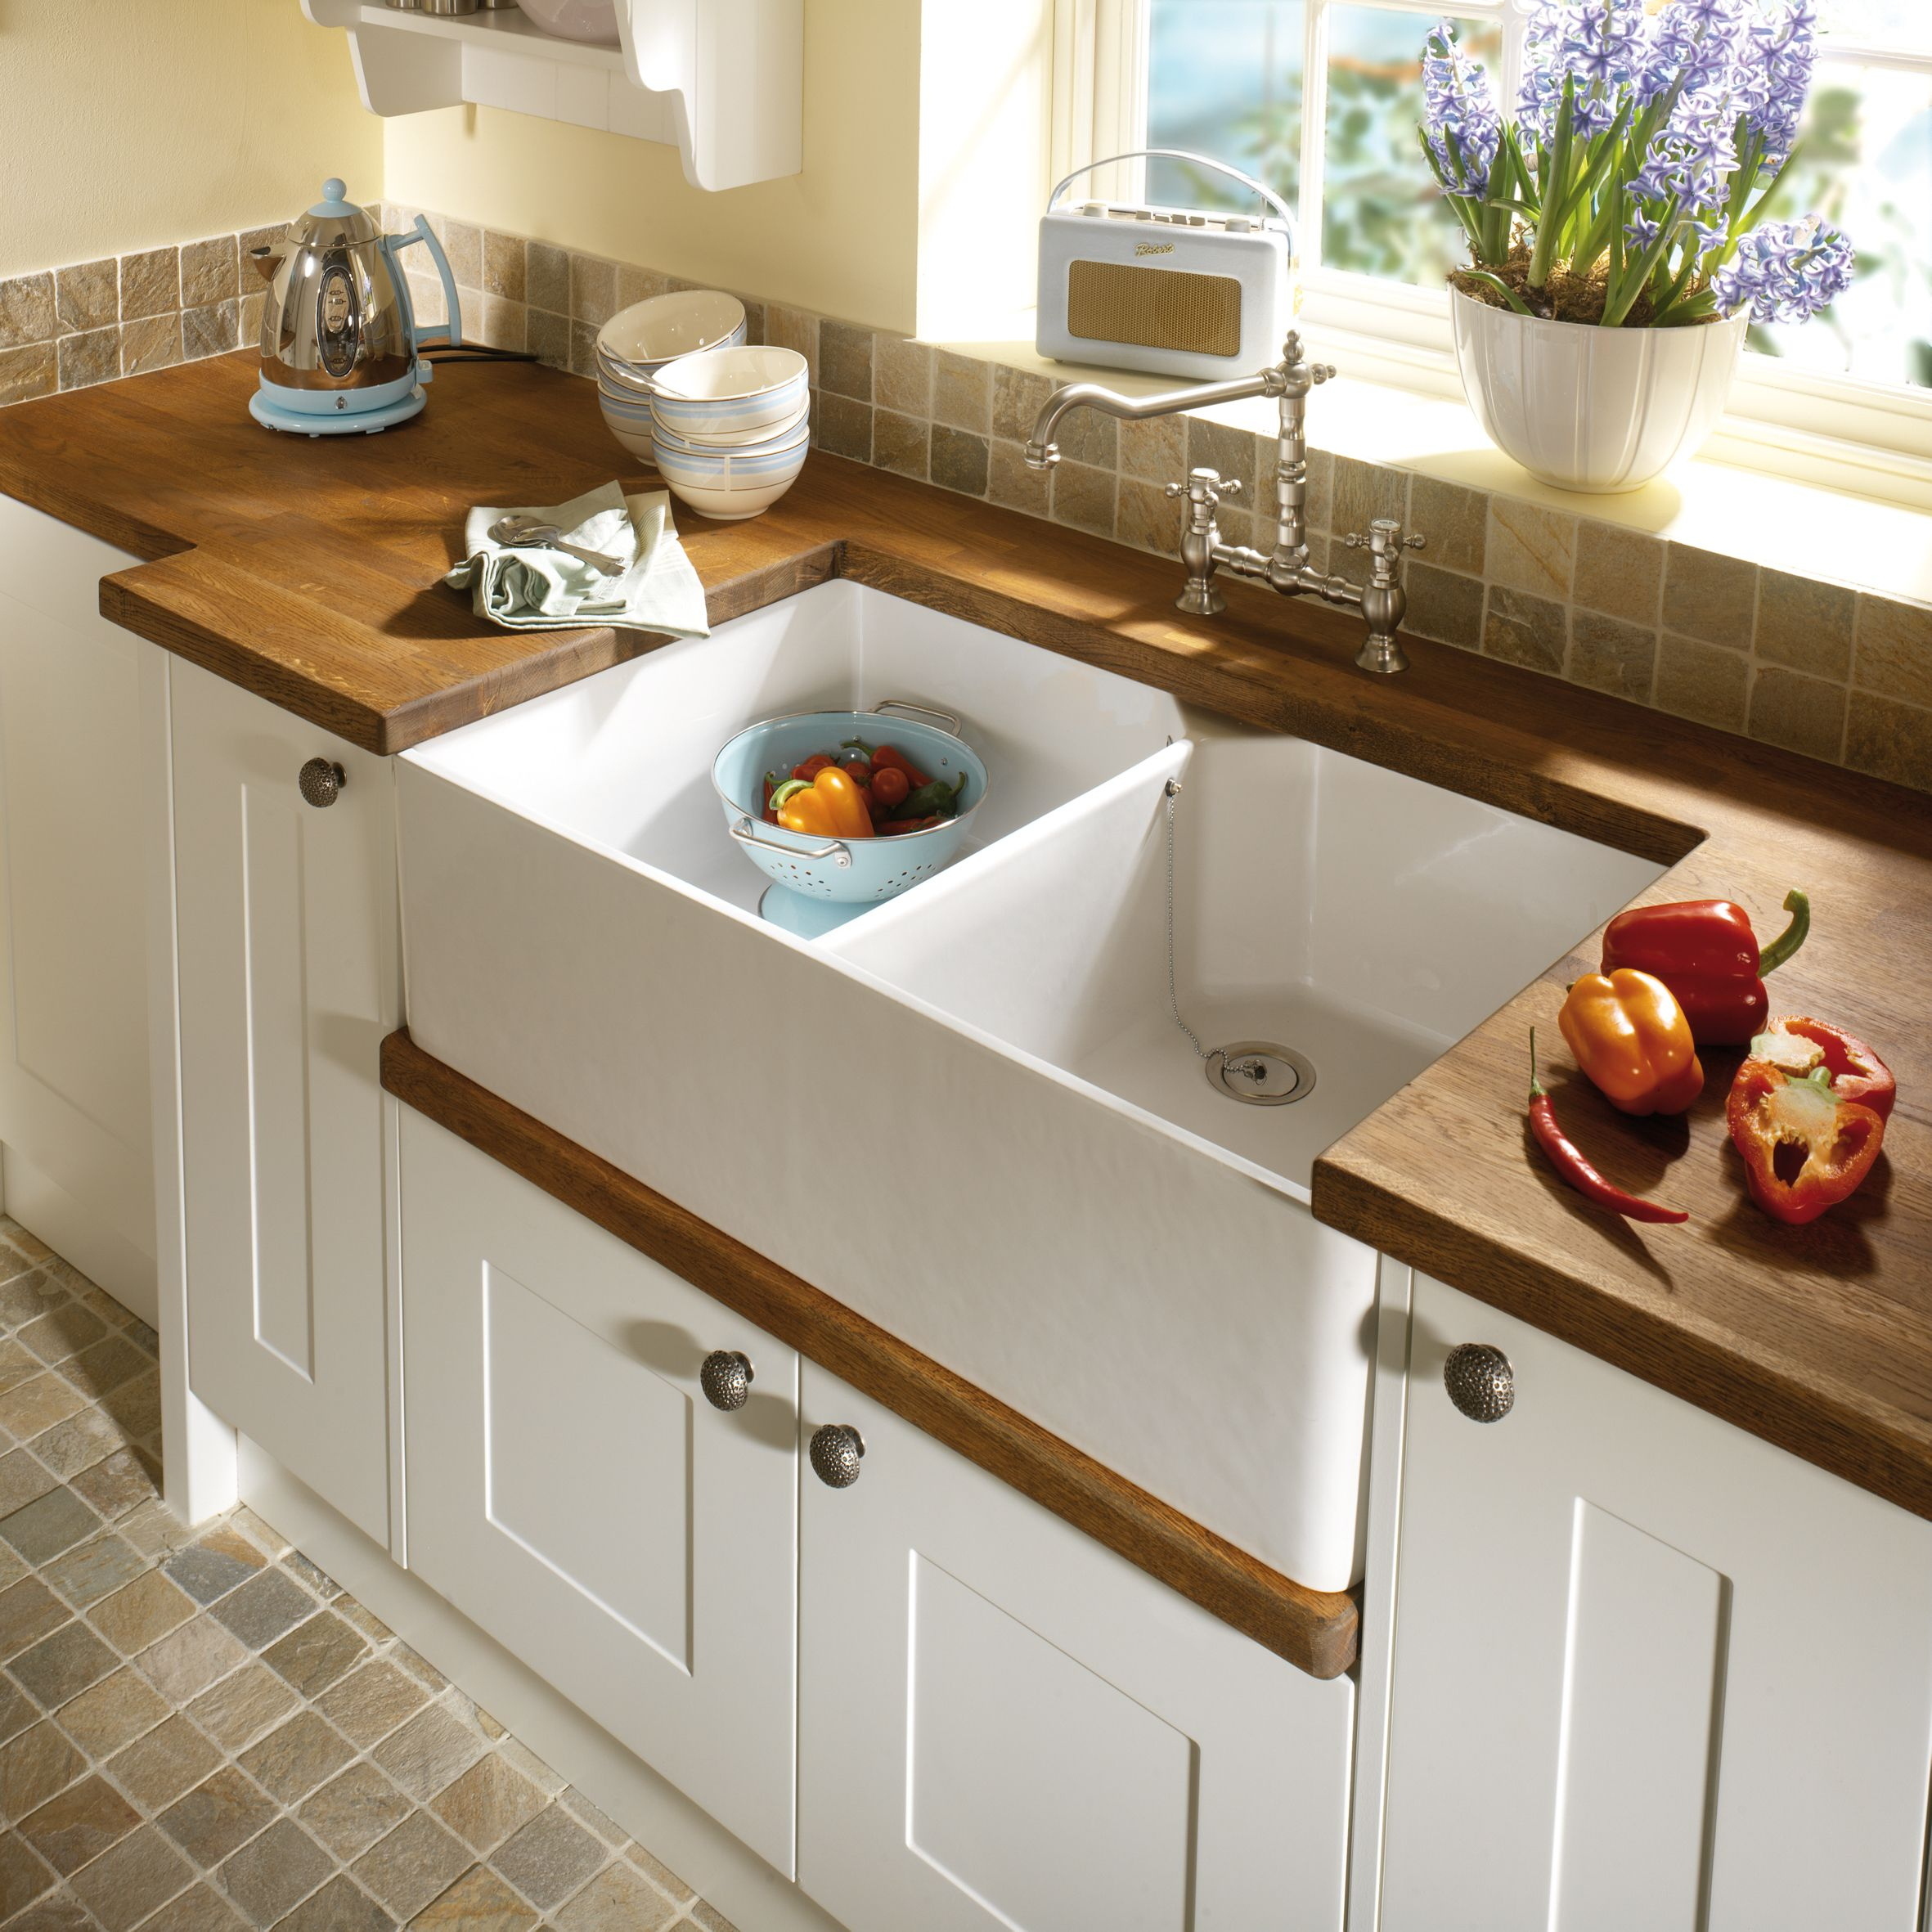 Big Kitchen Sinks Contemporary Light Fixtures The Astracast Sudbury Is Perfect For When Isn T Enough Classic Farmhouse Styling With Two Large Capacity Bowls Making It As Practical